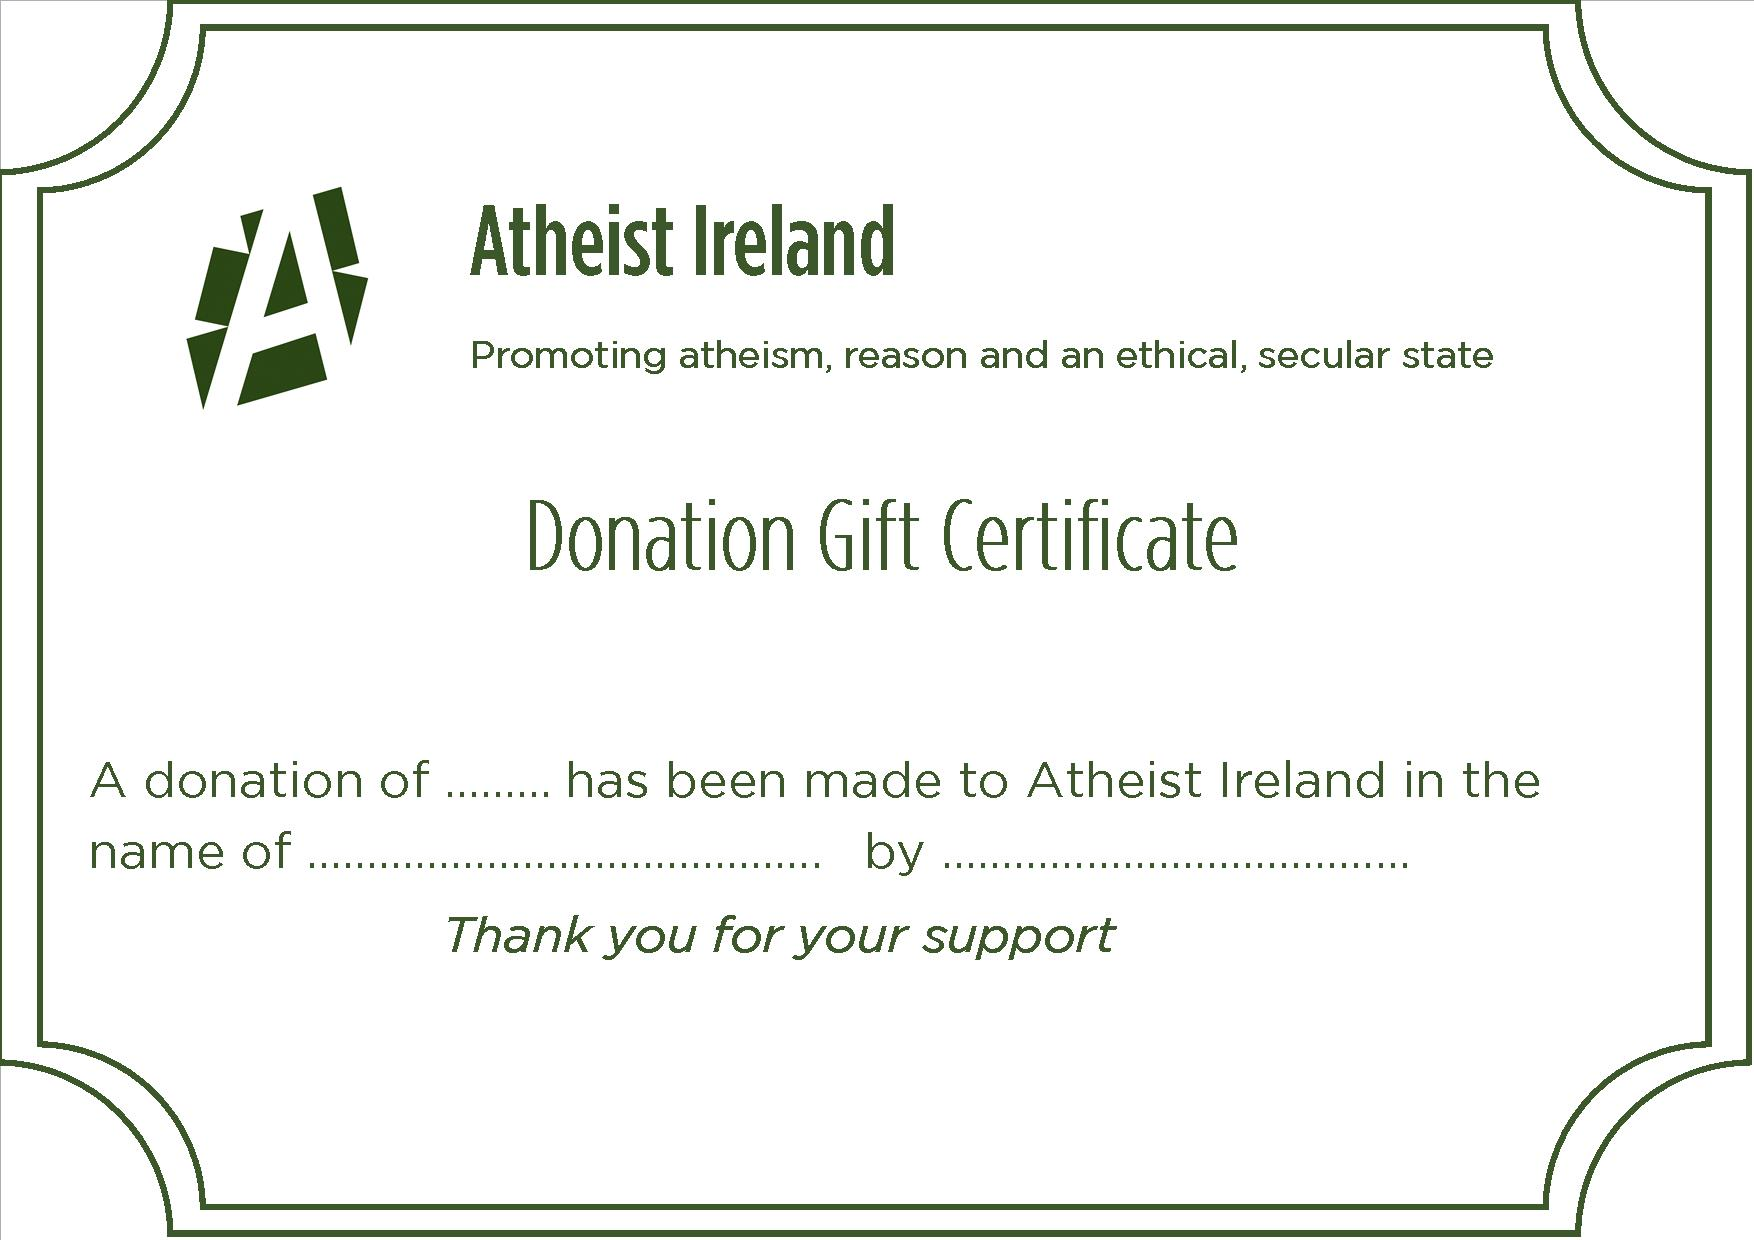 atheist ireland promoting atheism reason and an ethical secular state. Black Bedroom Furniture Sets. Home Design Ideas